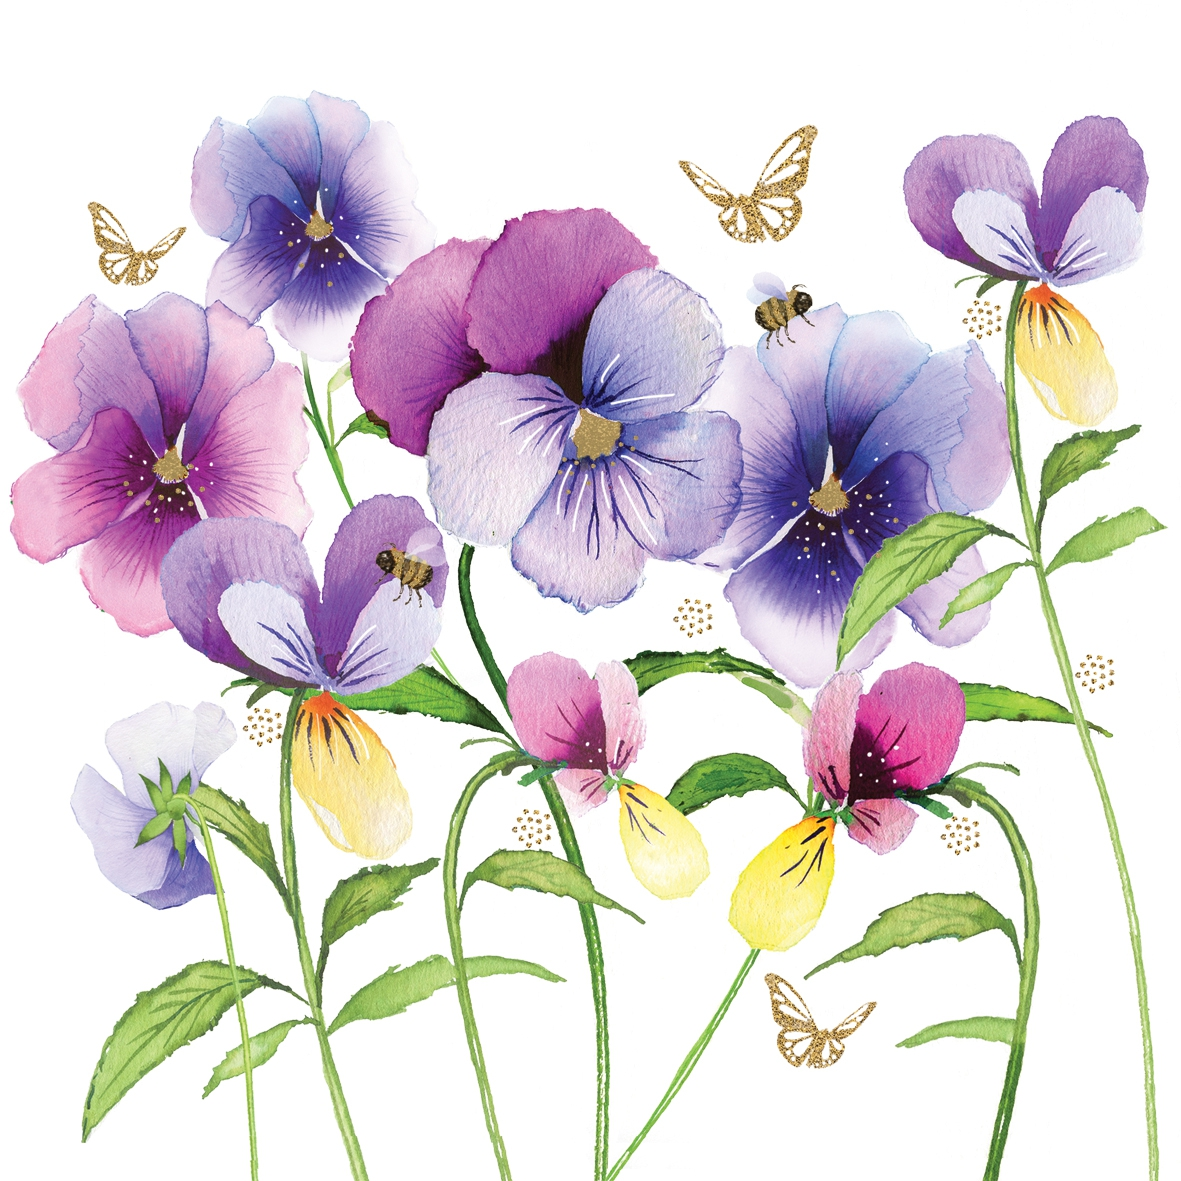 Lunch Servietten Violet Pansies